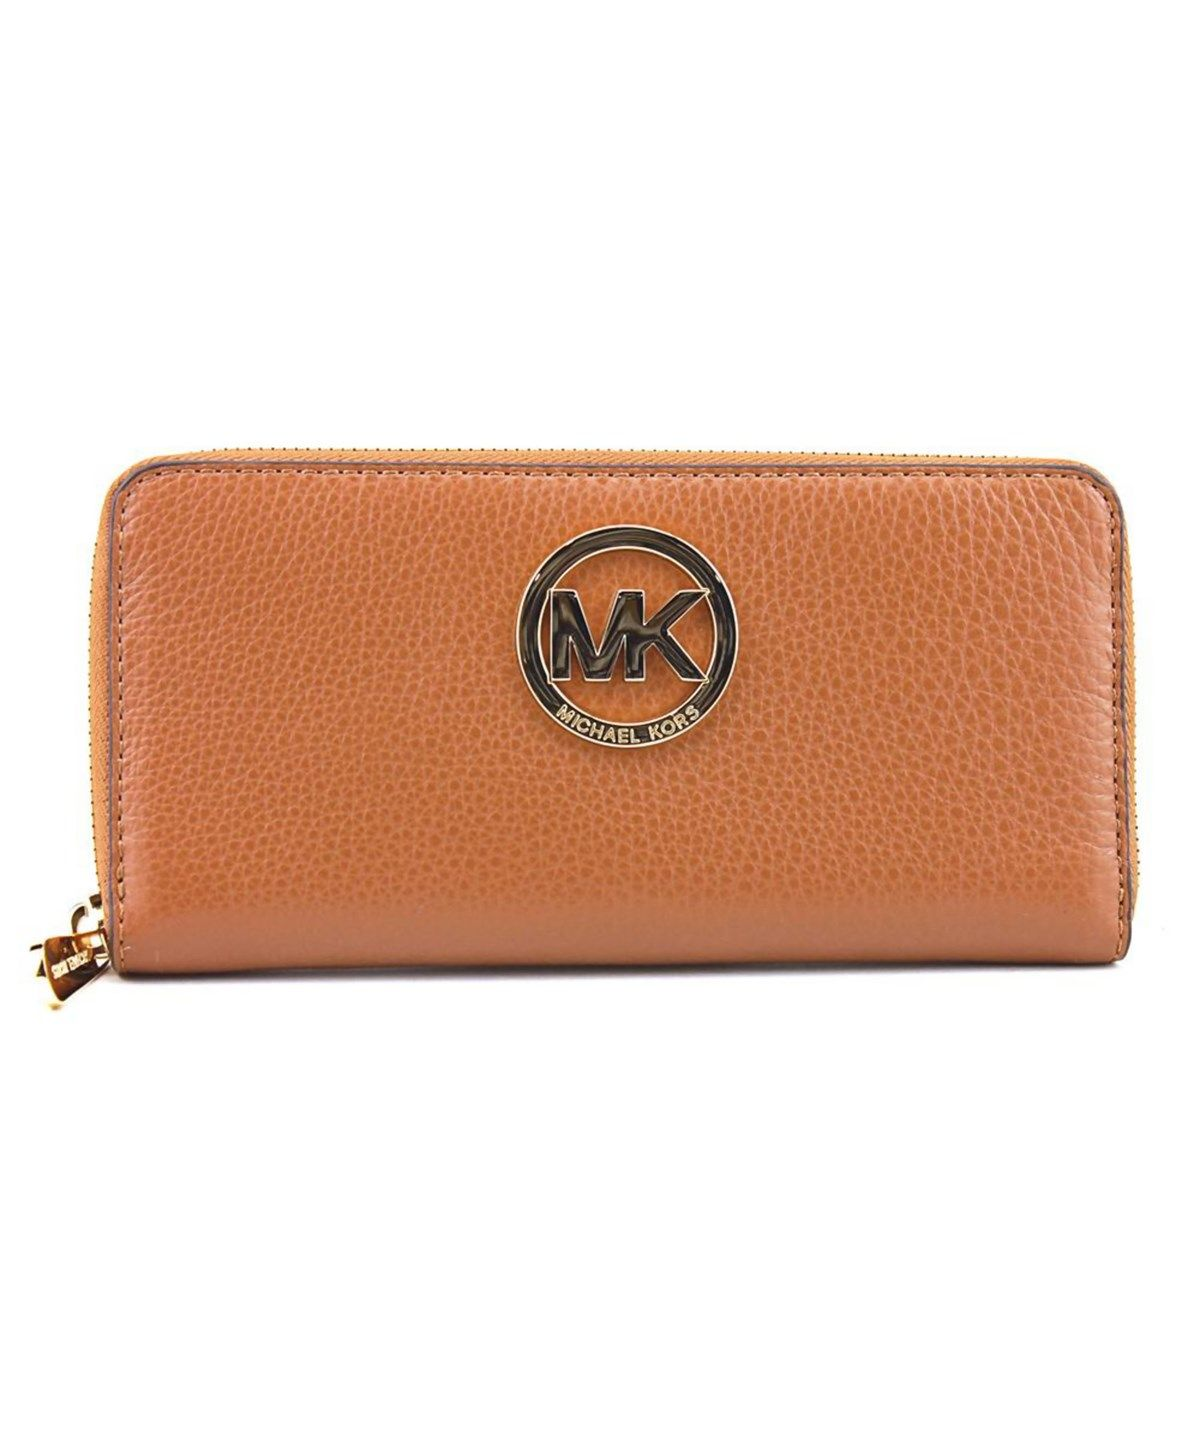 7e216660cb73b0 MICHAEL MICHAEL KORS MICHAEL MICHAEL KORS FULTON ZIP AROUND CONTINENTAL  WOMEN WALLET NWT'. #michaelmichaelkors #bags #leather #wallet #accessories  #lining #